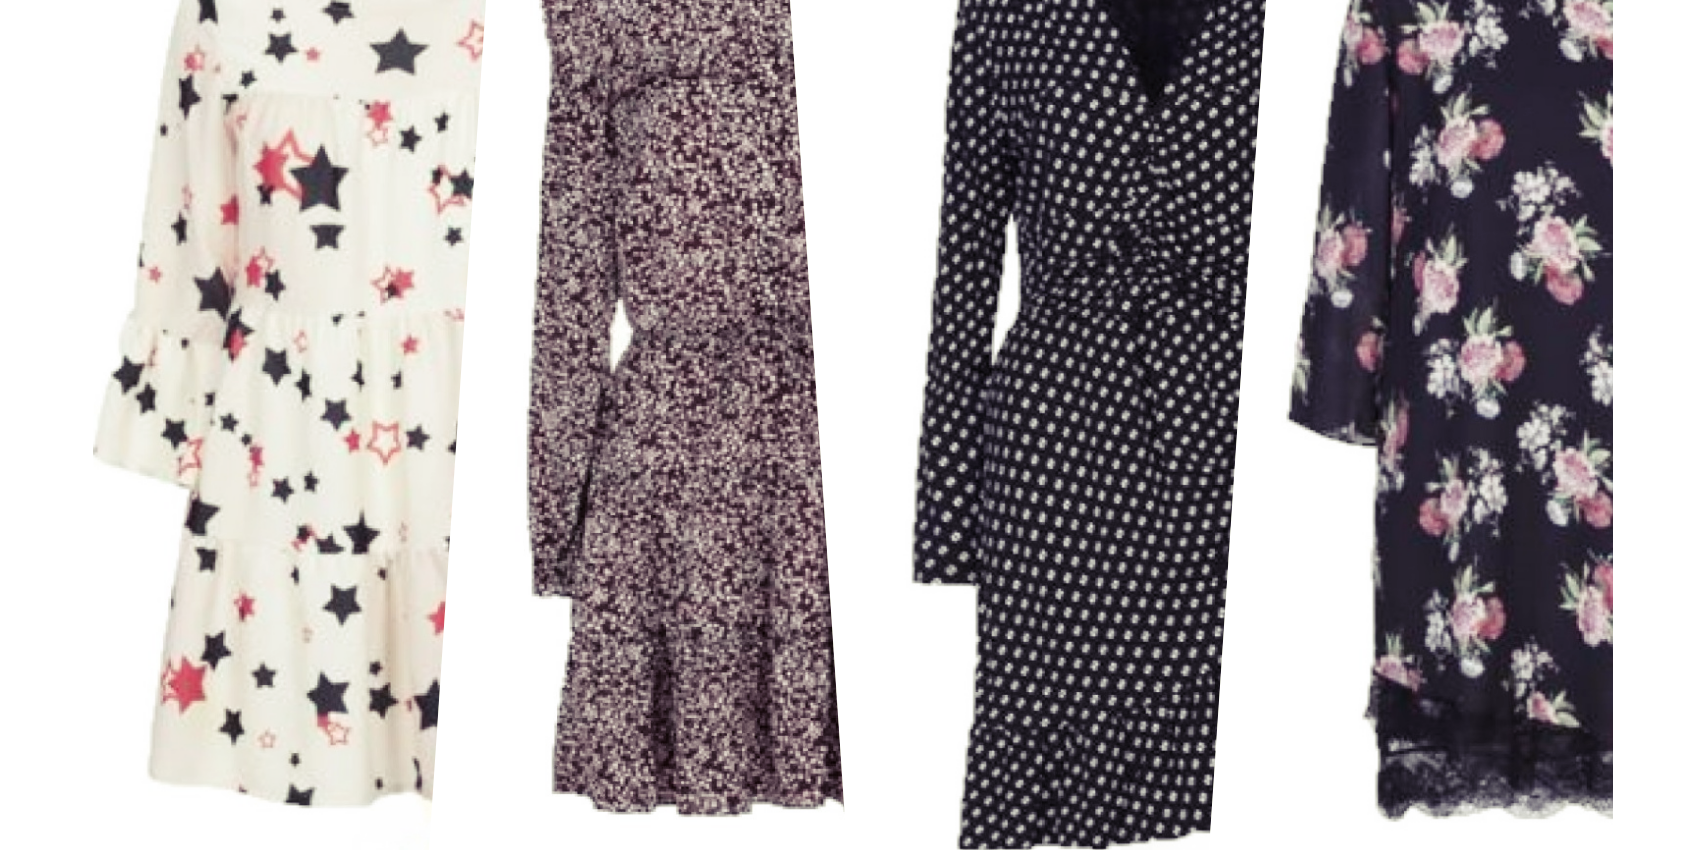 4 Outfits with printed dresses and midi boots